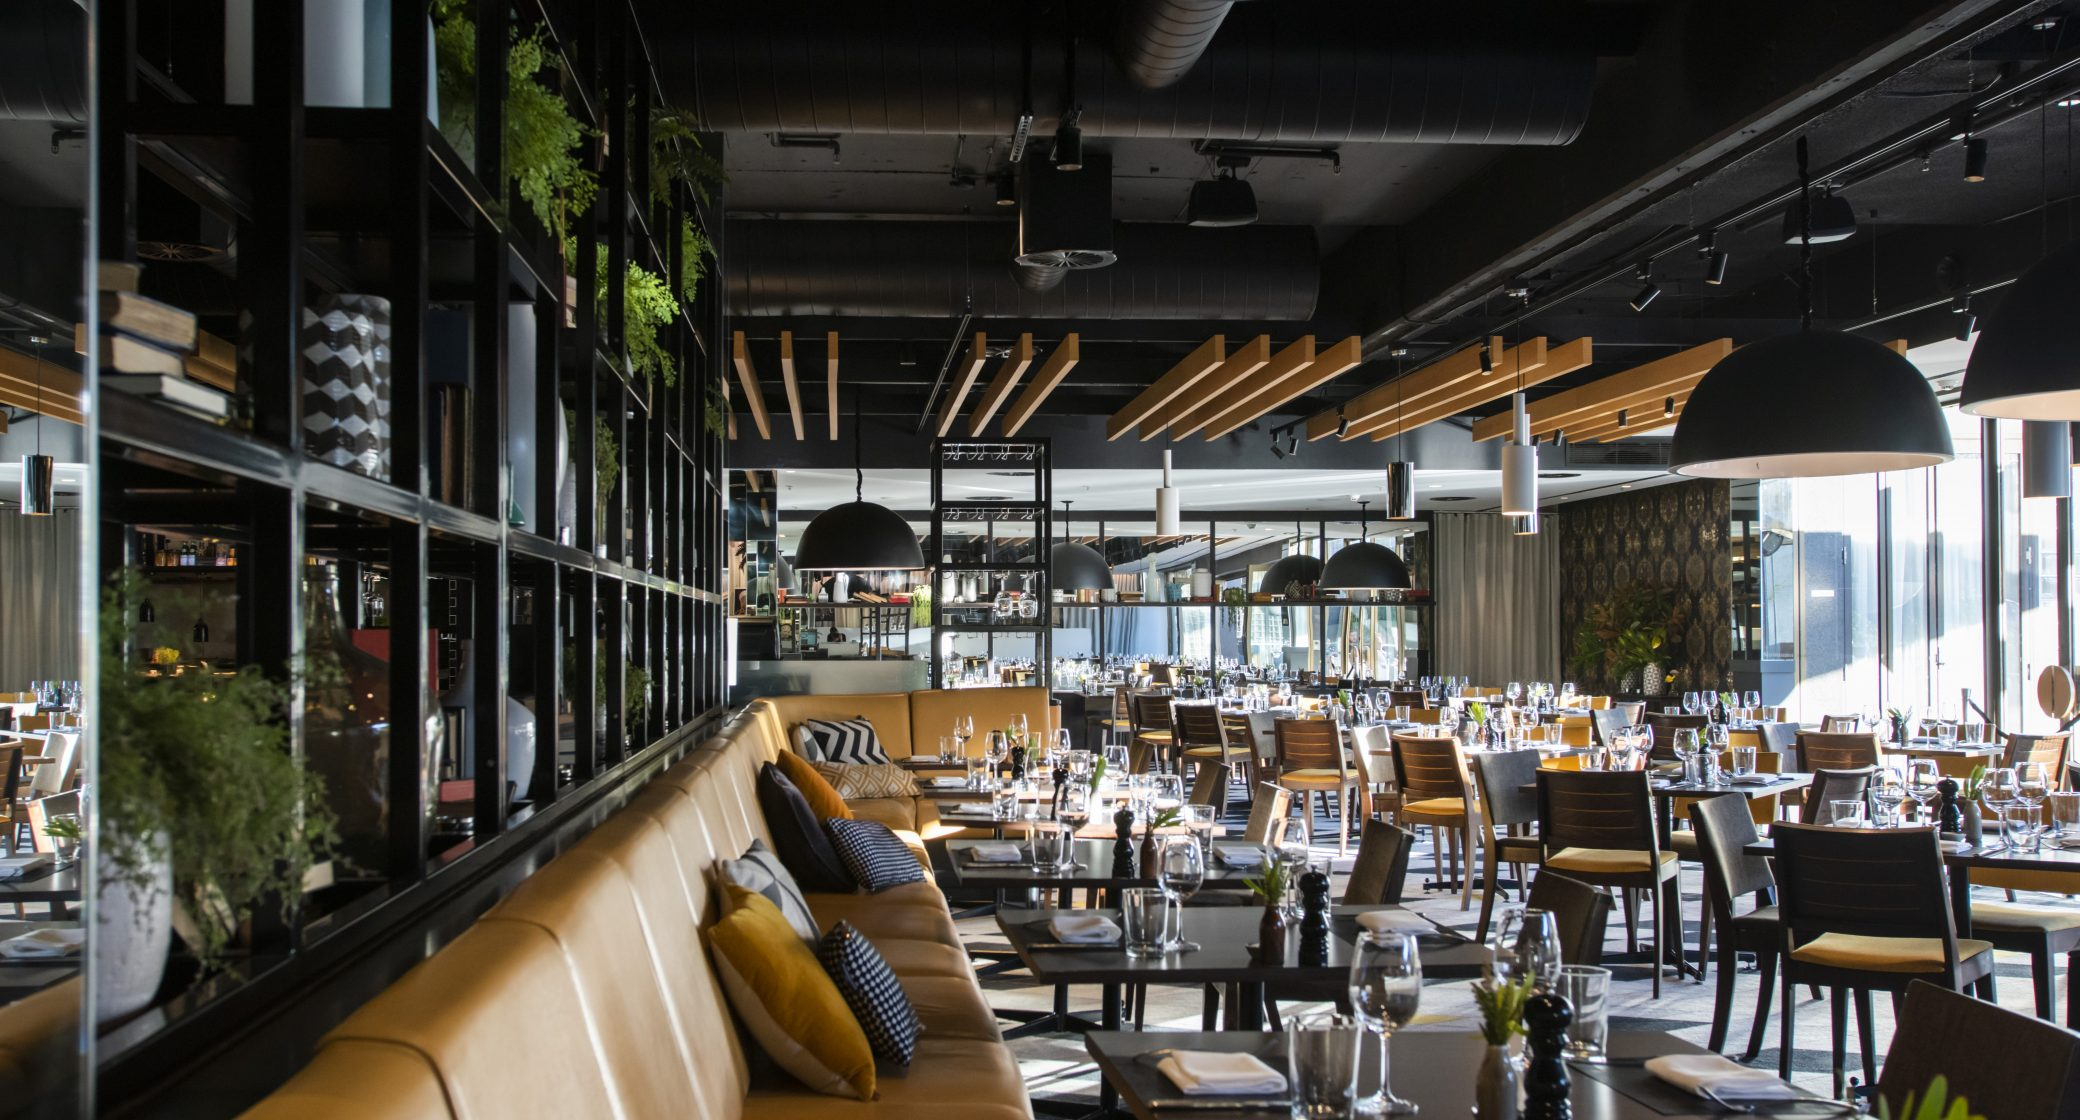 1 London Circuit, Capitol Bar & Grill in a designer chic luxury hotel